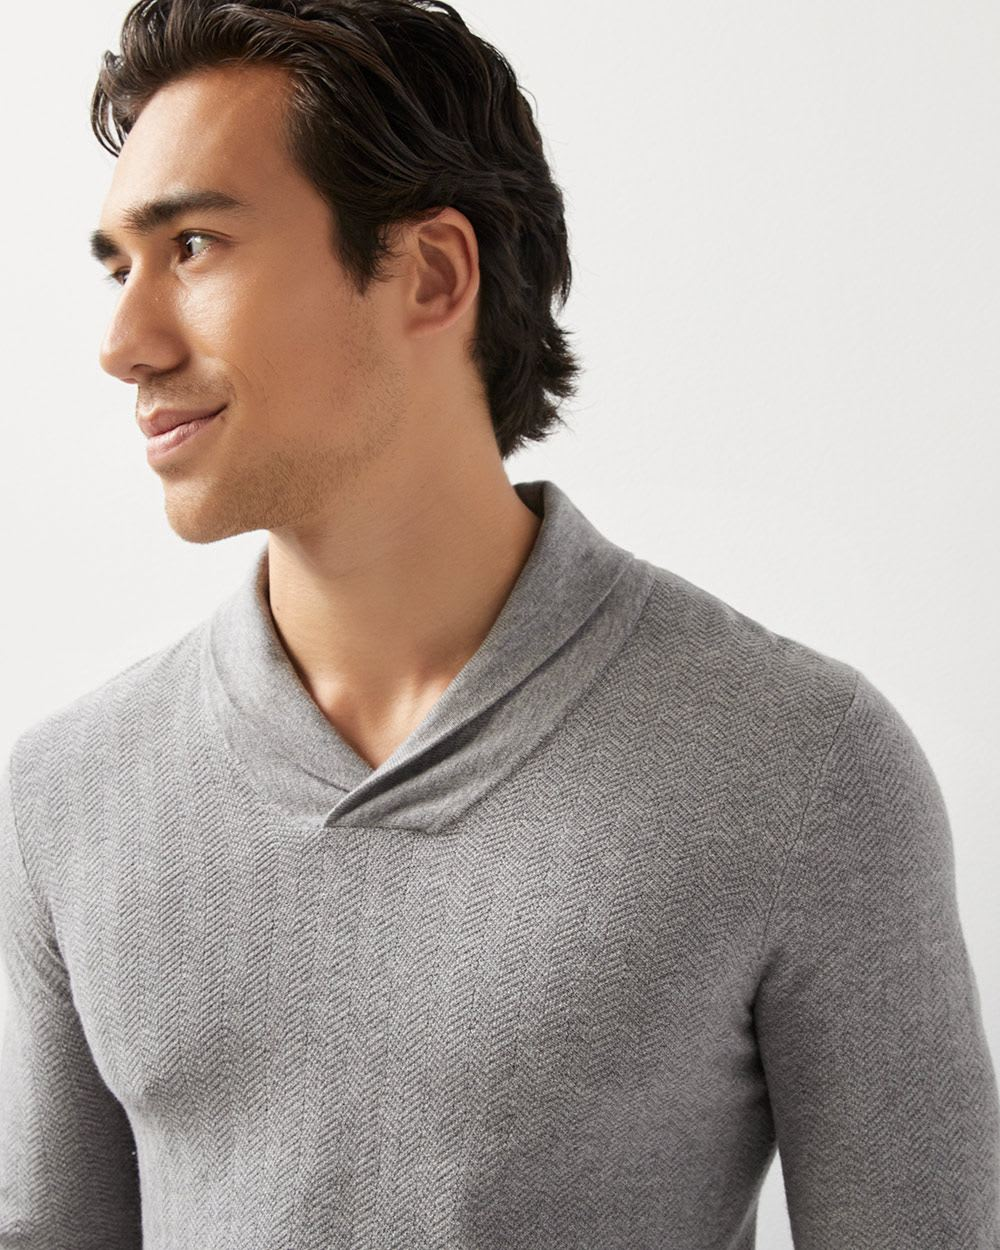 Textured Shawl-collar sweater